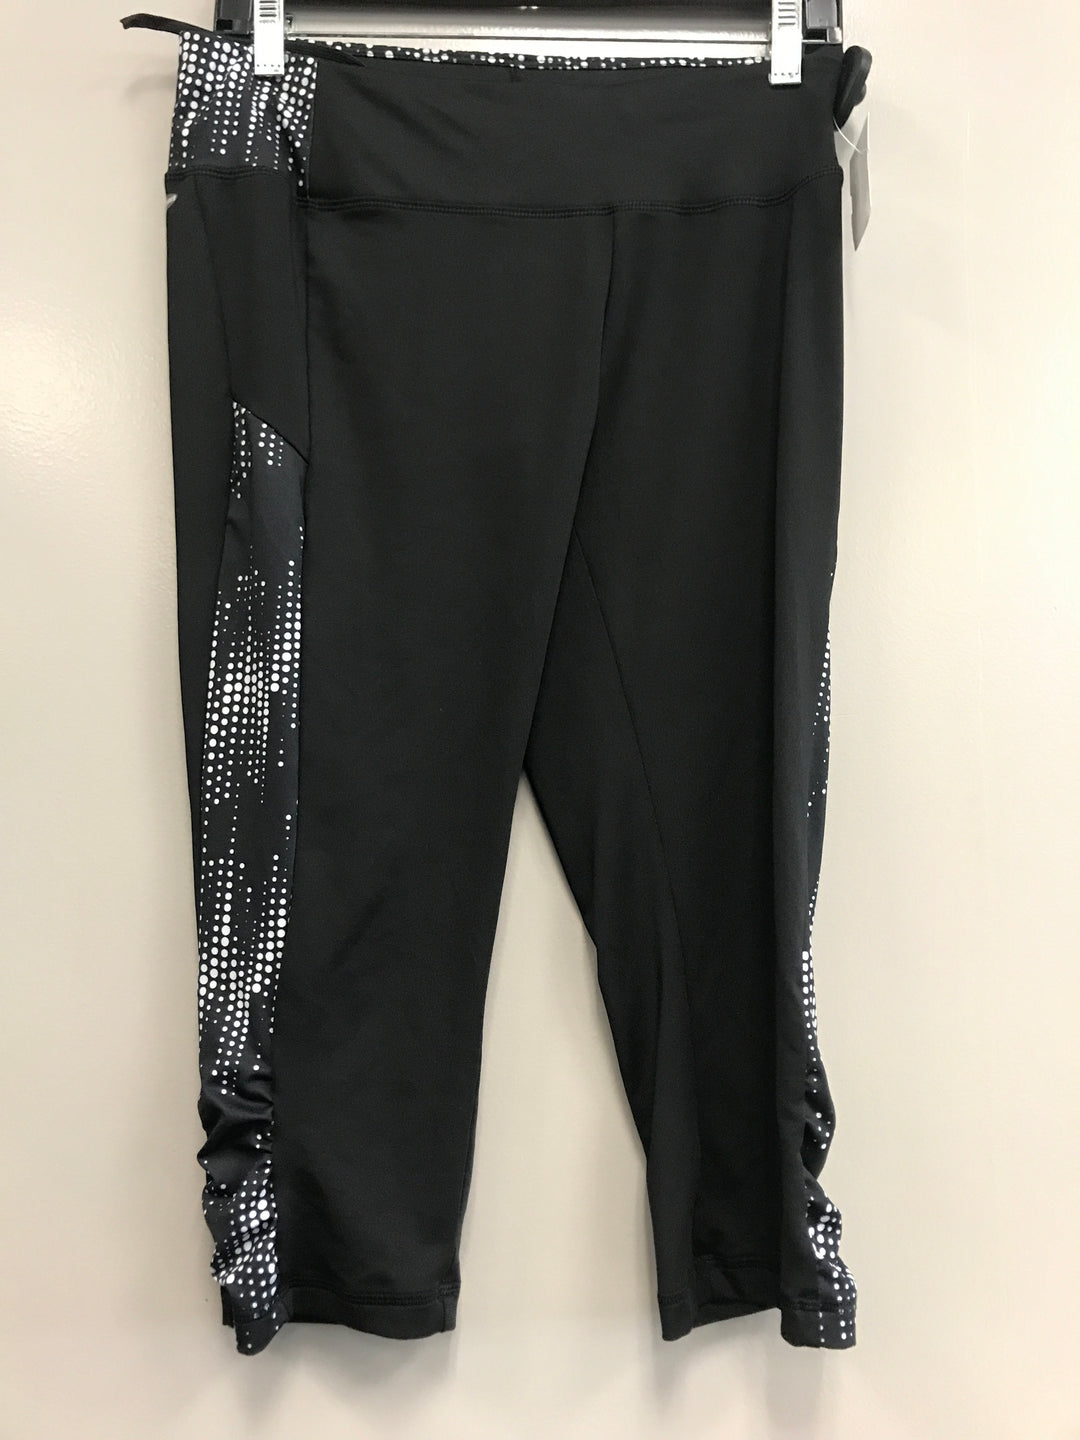 Primary Photo - BRAND: ATHLETIC WORKS <BR>STYLE: ATHLETIC CAPRIS <BR>COLOR: BLACK <BR>SIZE: M <BR>SKU: 313-31332-8276